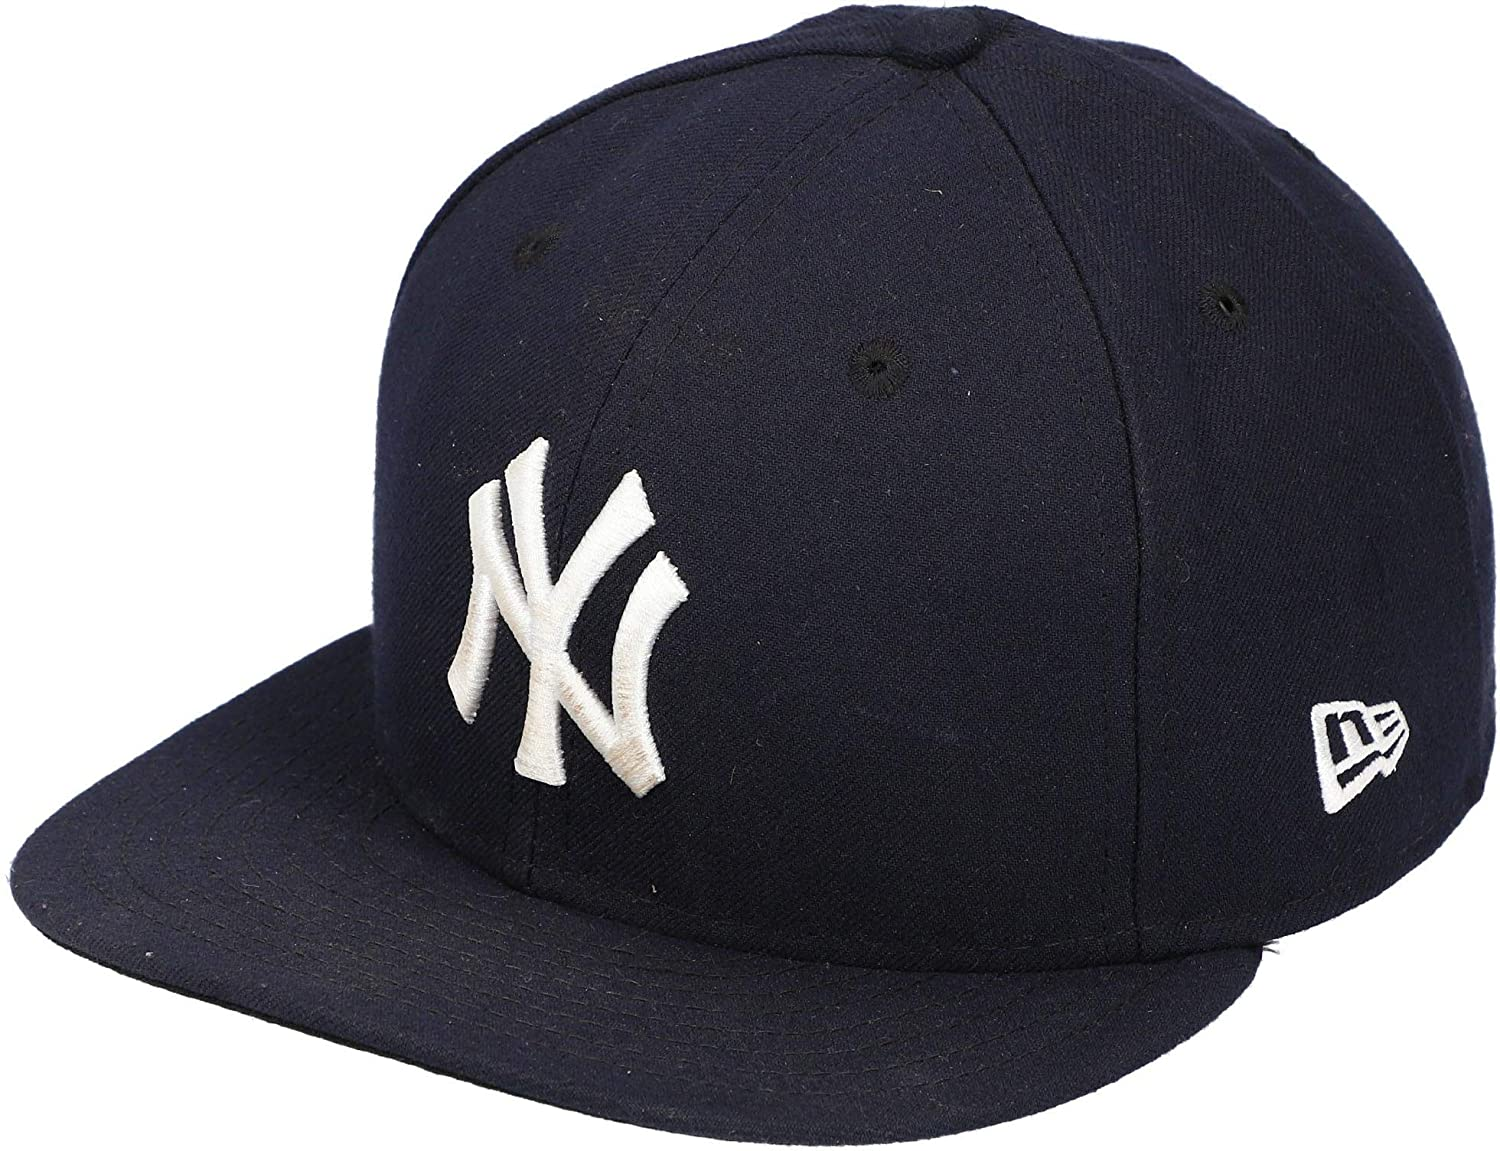 Austin Romine New York Yankees Game-Used #28 Navy Cap vs. Boston Red Sox on September 30, 2018 - Size 7 1/2 - Fanatics Authentic Certified